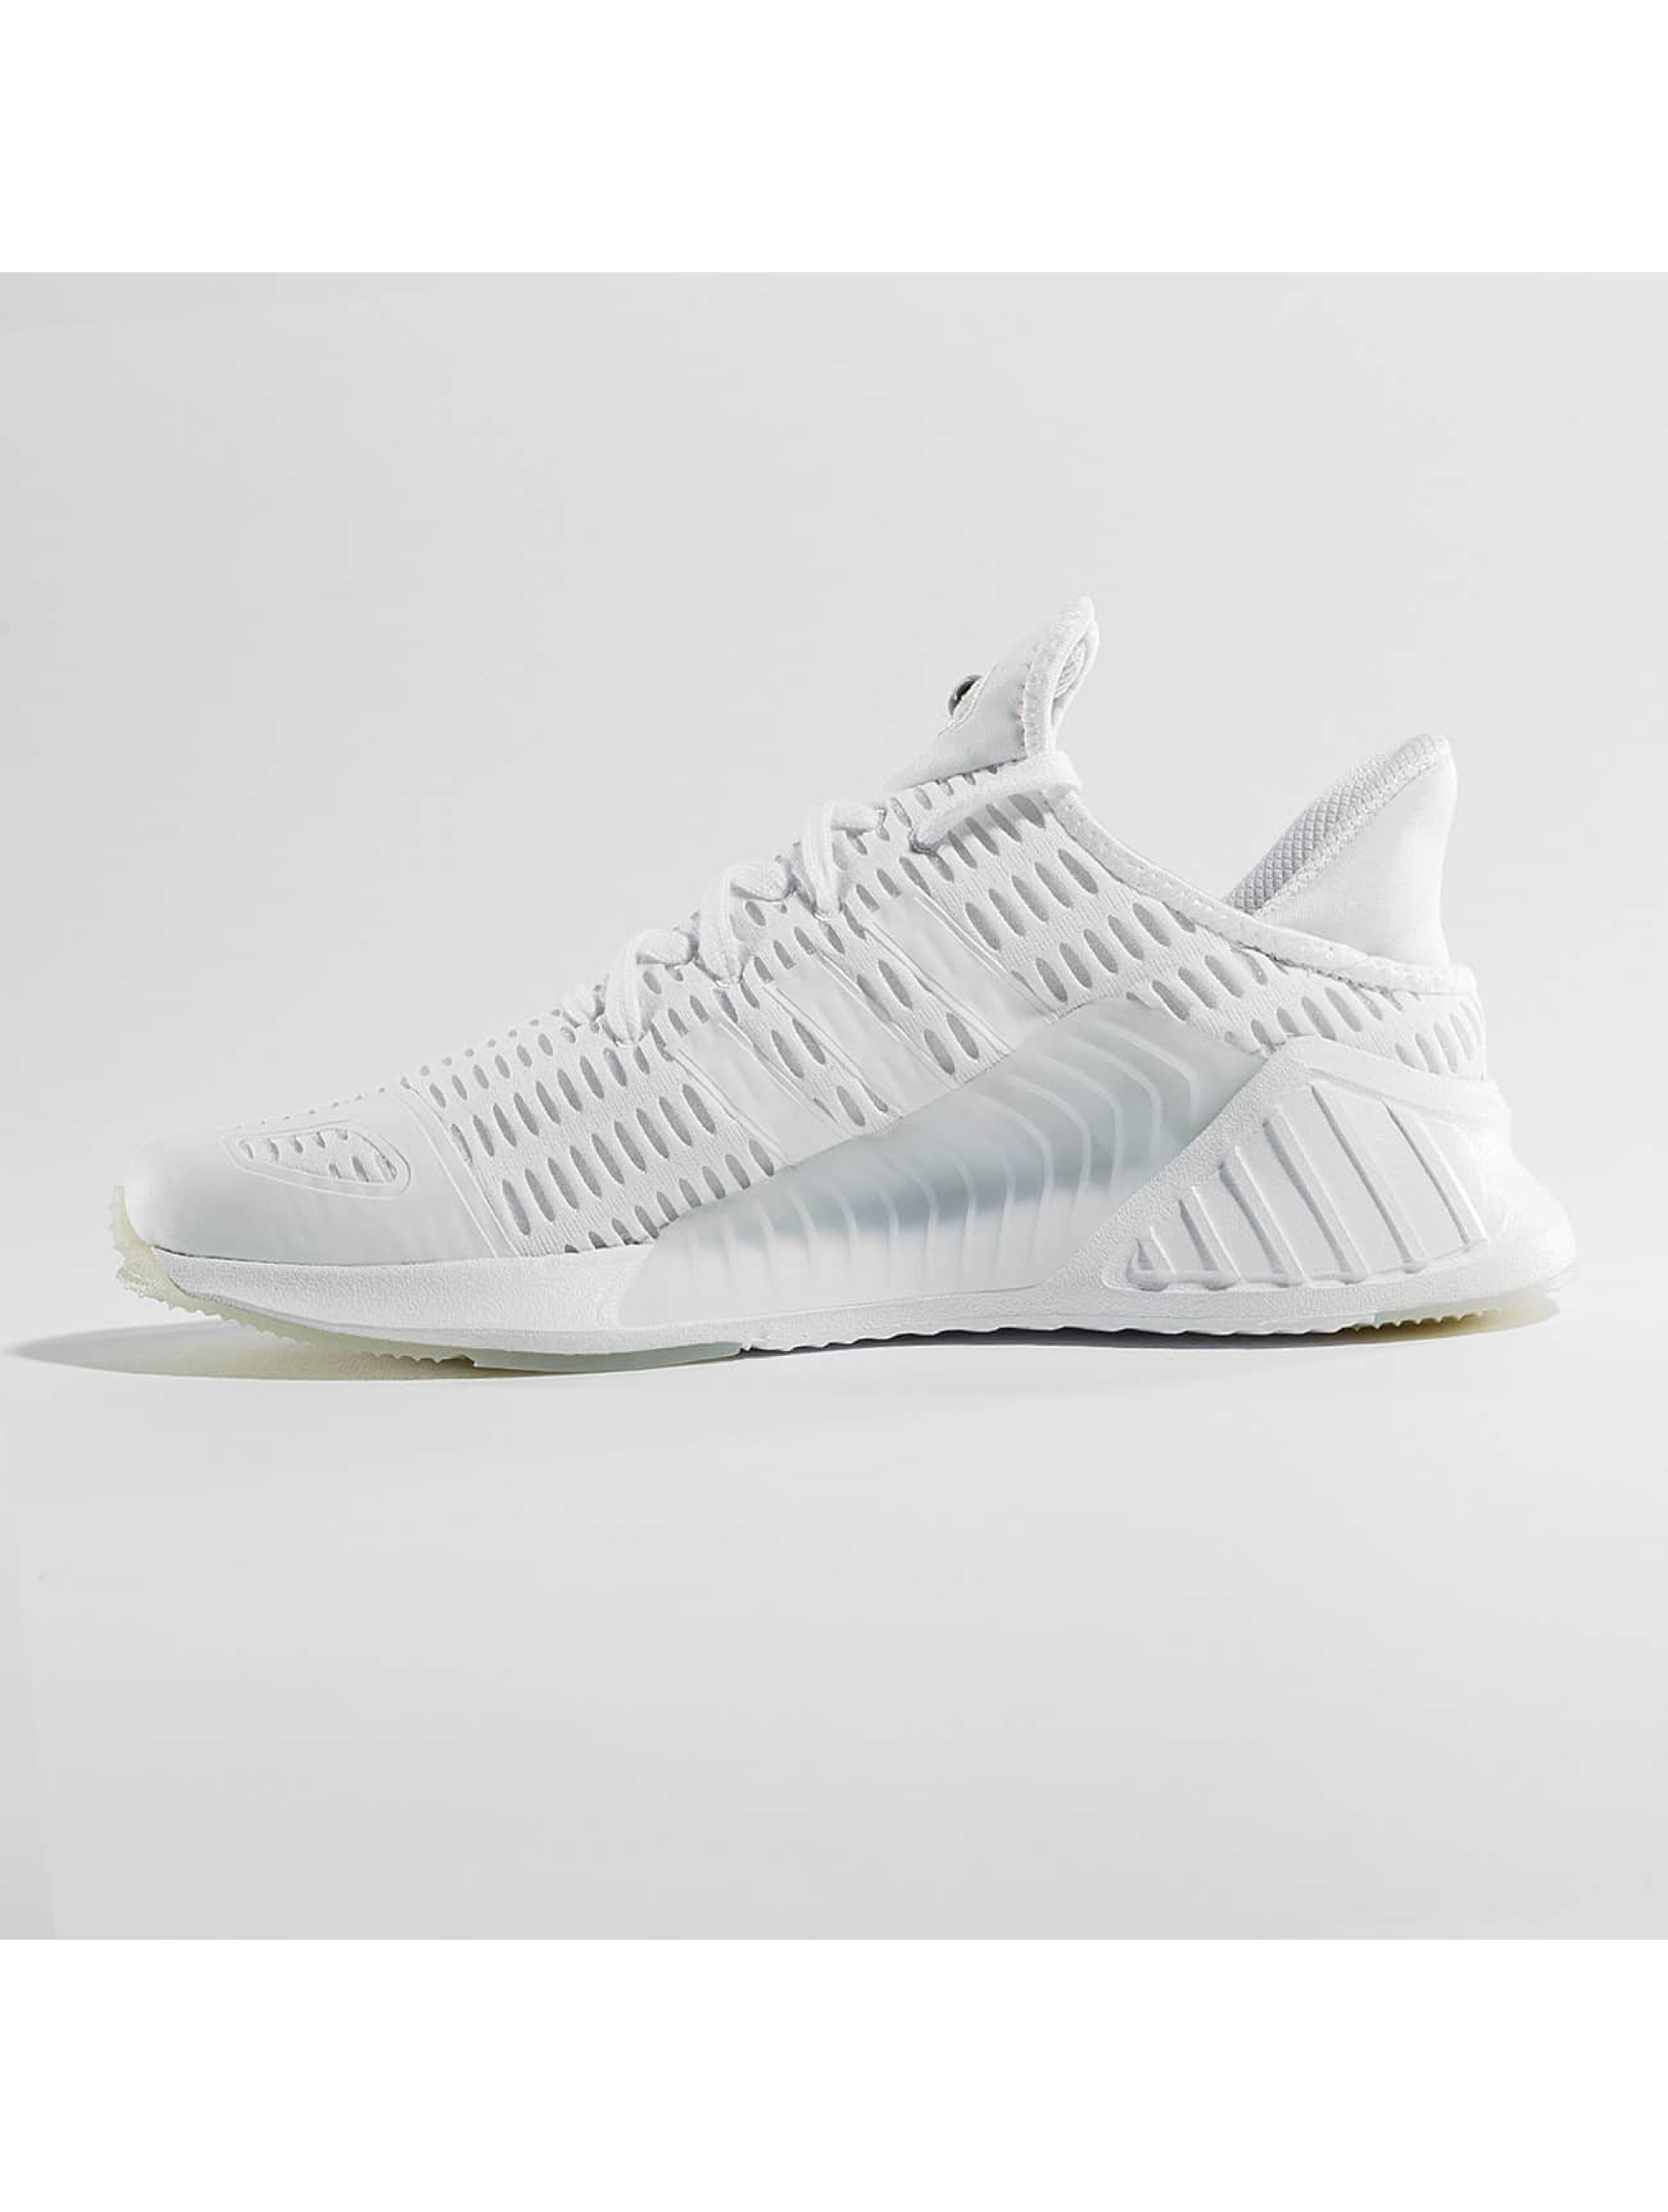 adidas Sneakers Climacool 02/17 white